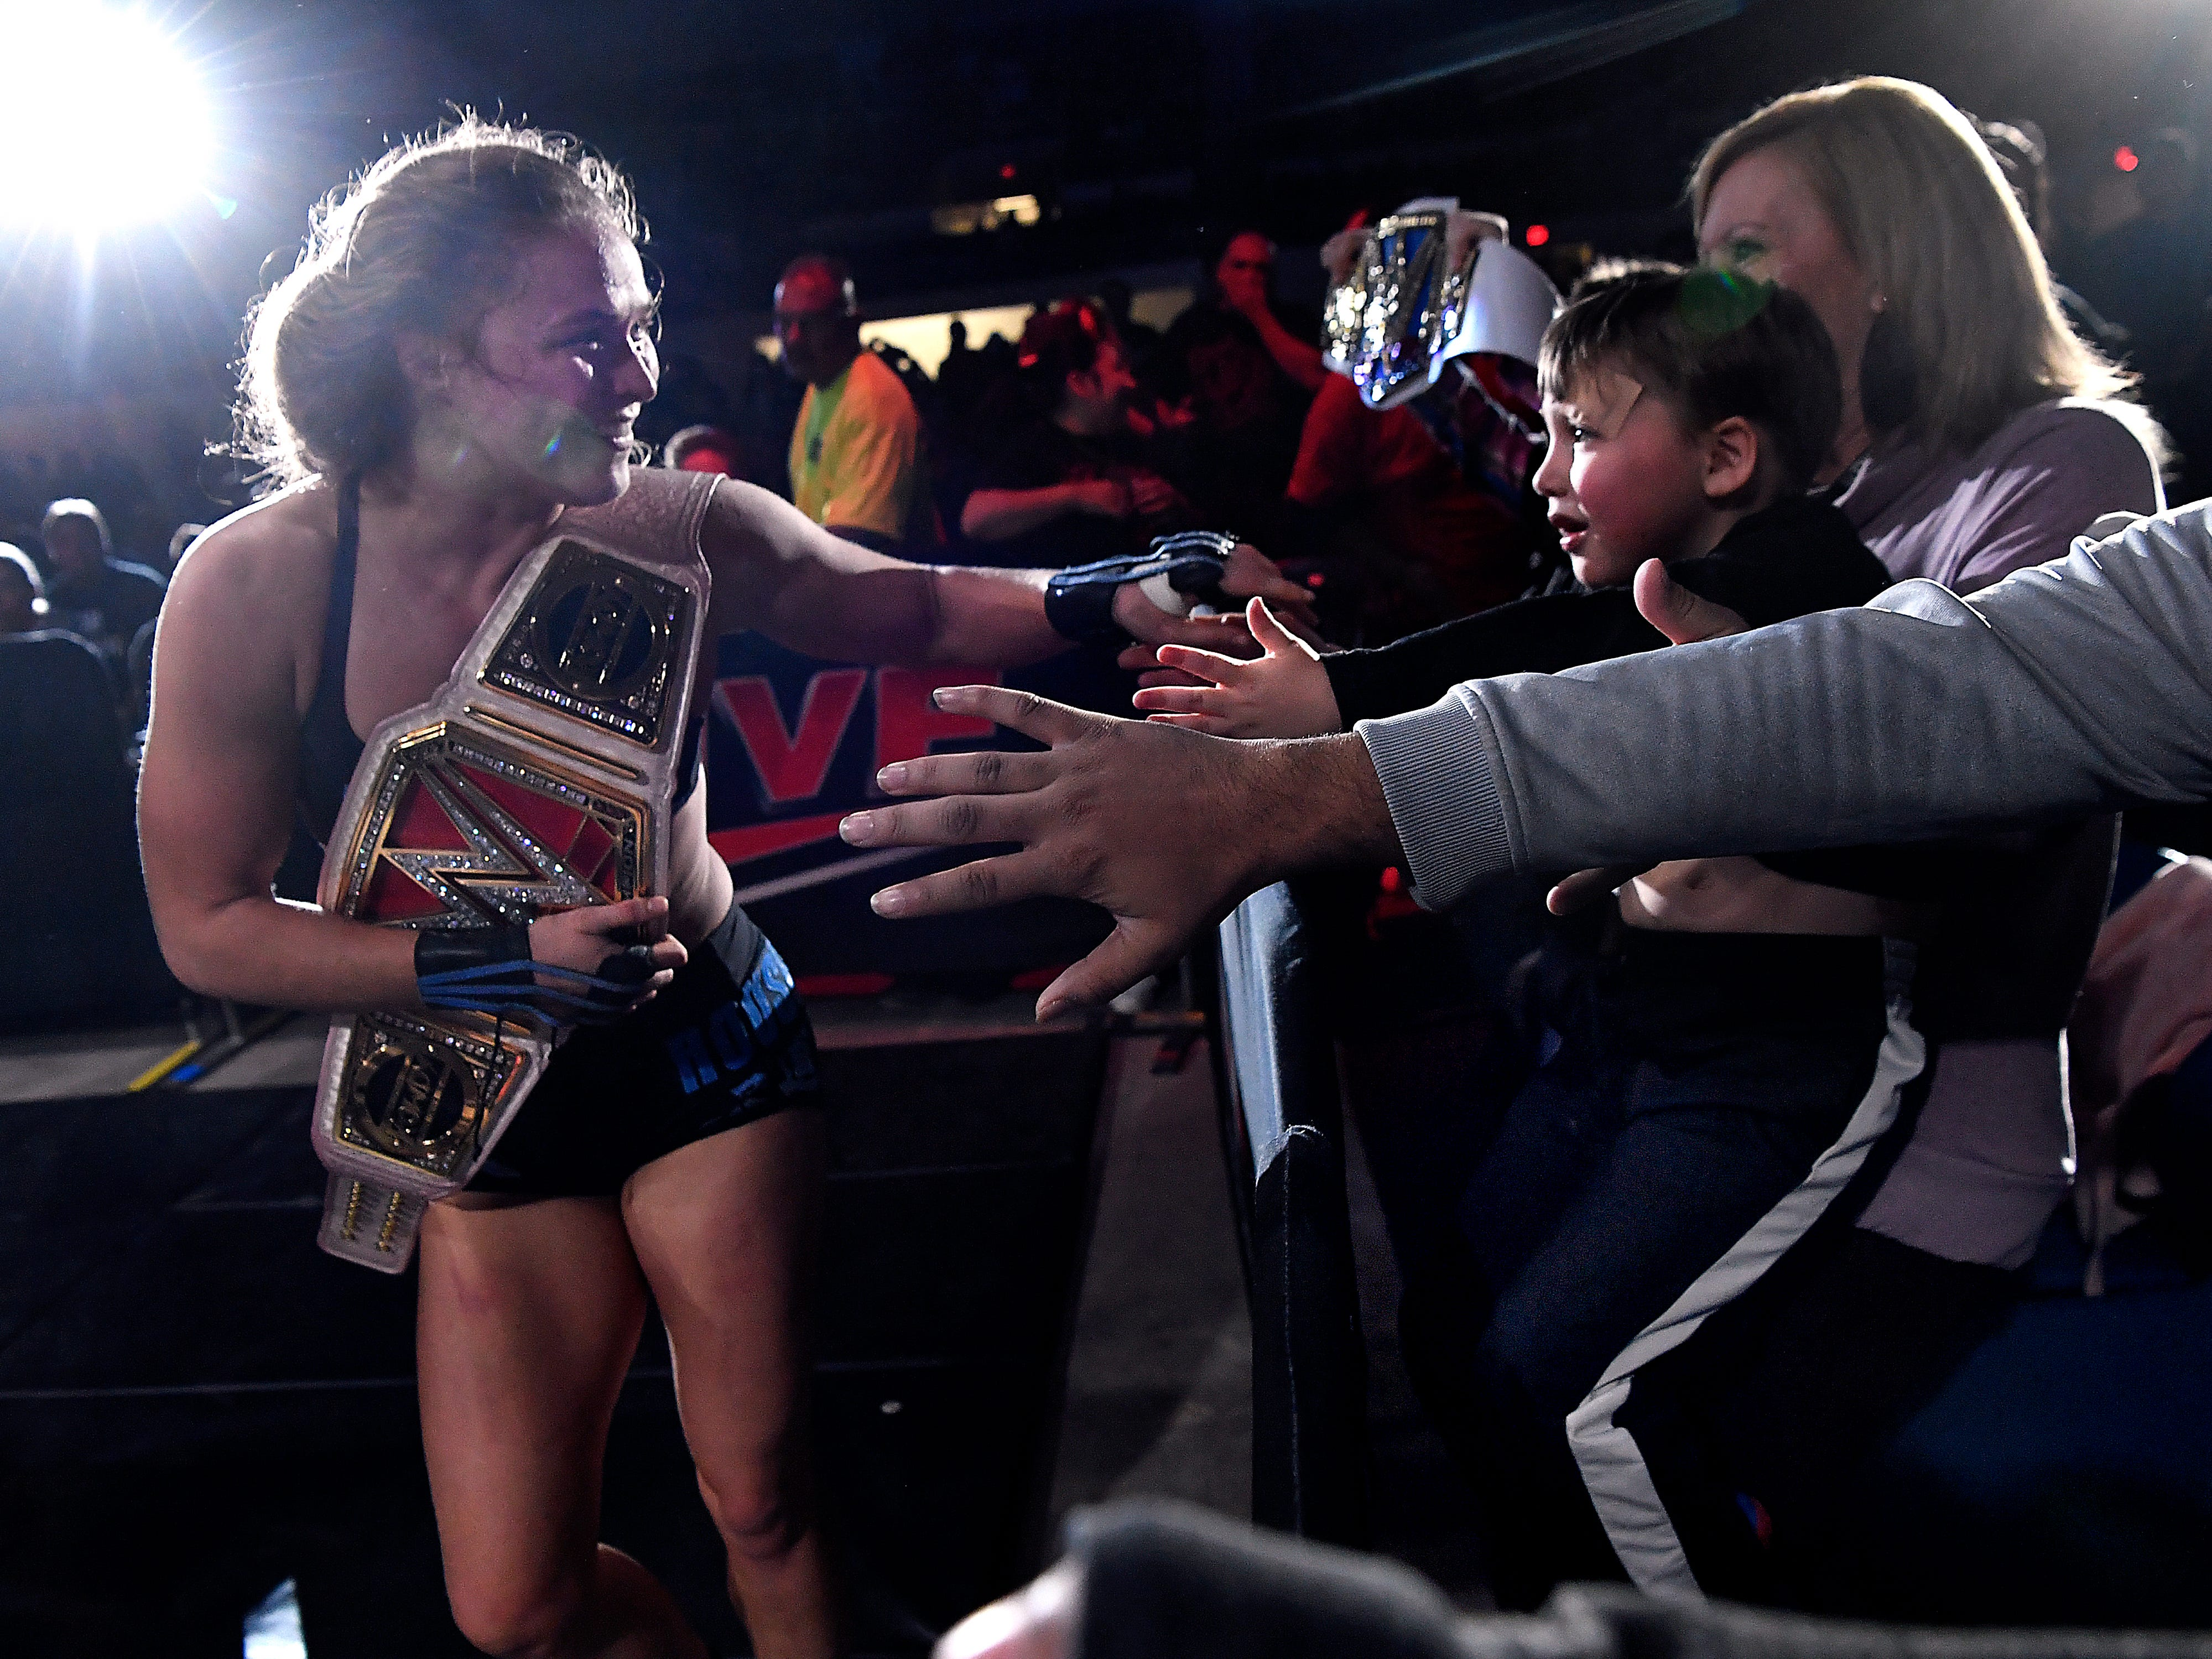 Ronda Rousey briefly takes the hand of four-year-old Weldon Samford, sitting on the lap of his mother Tammy, after her match during Saturday's WWE Live wrestling event Jan. 19, 2019. Held at the Taylor County Coliseum, the evening featured a colorful array of World Wrestling Entertainment stars.